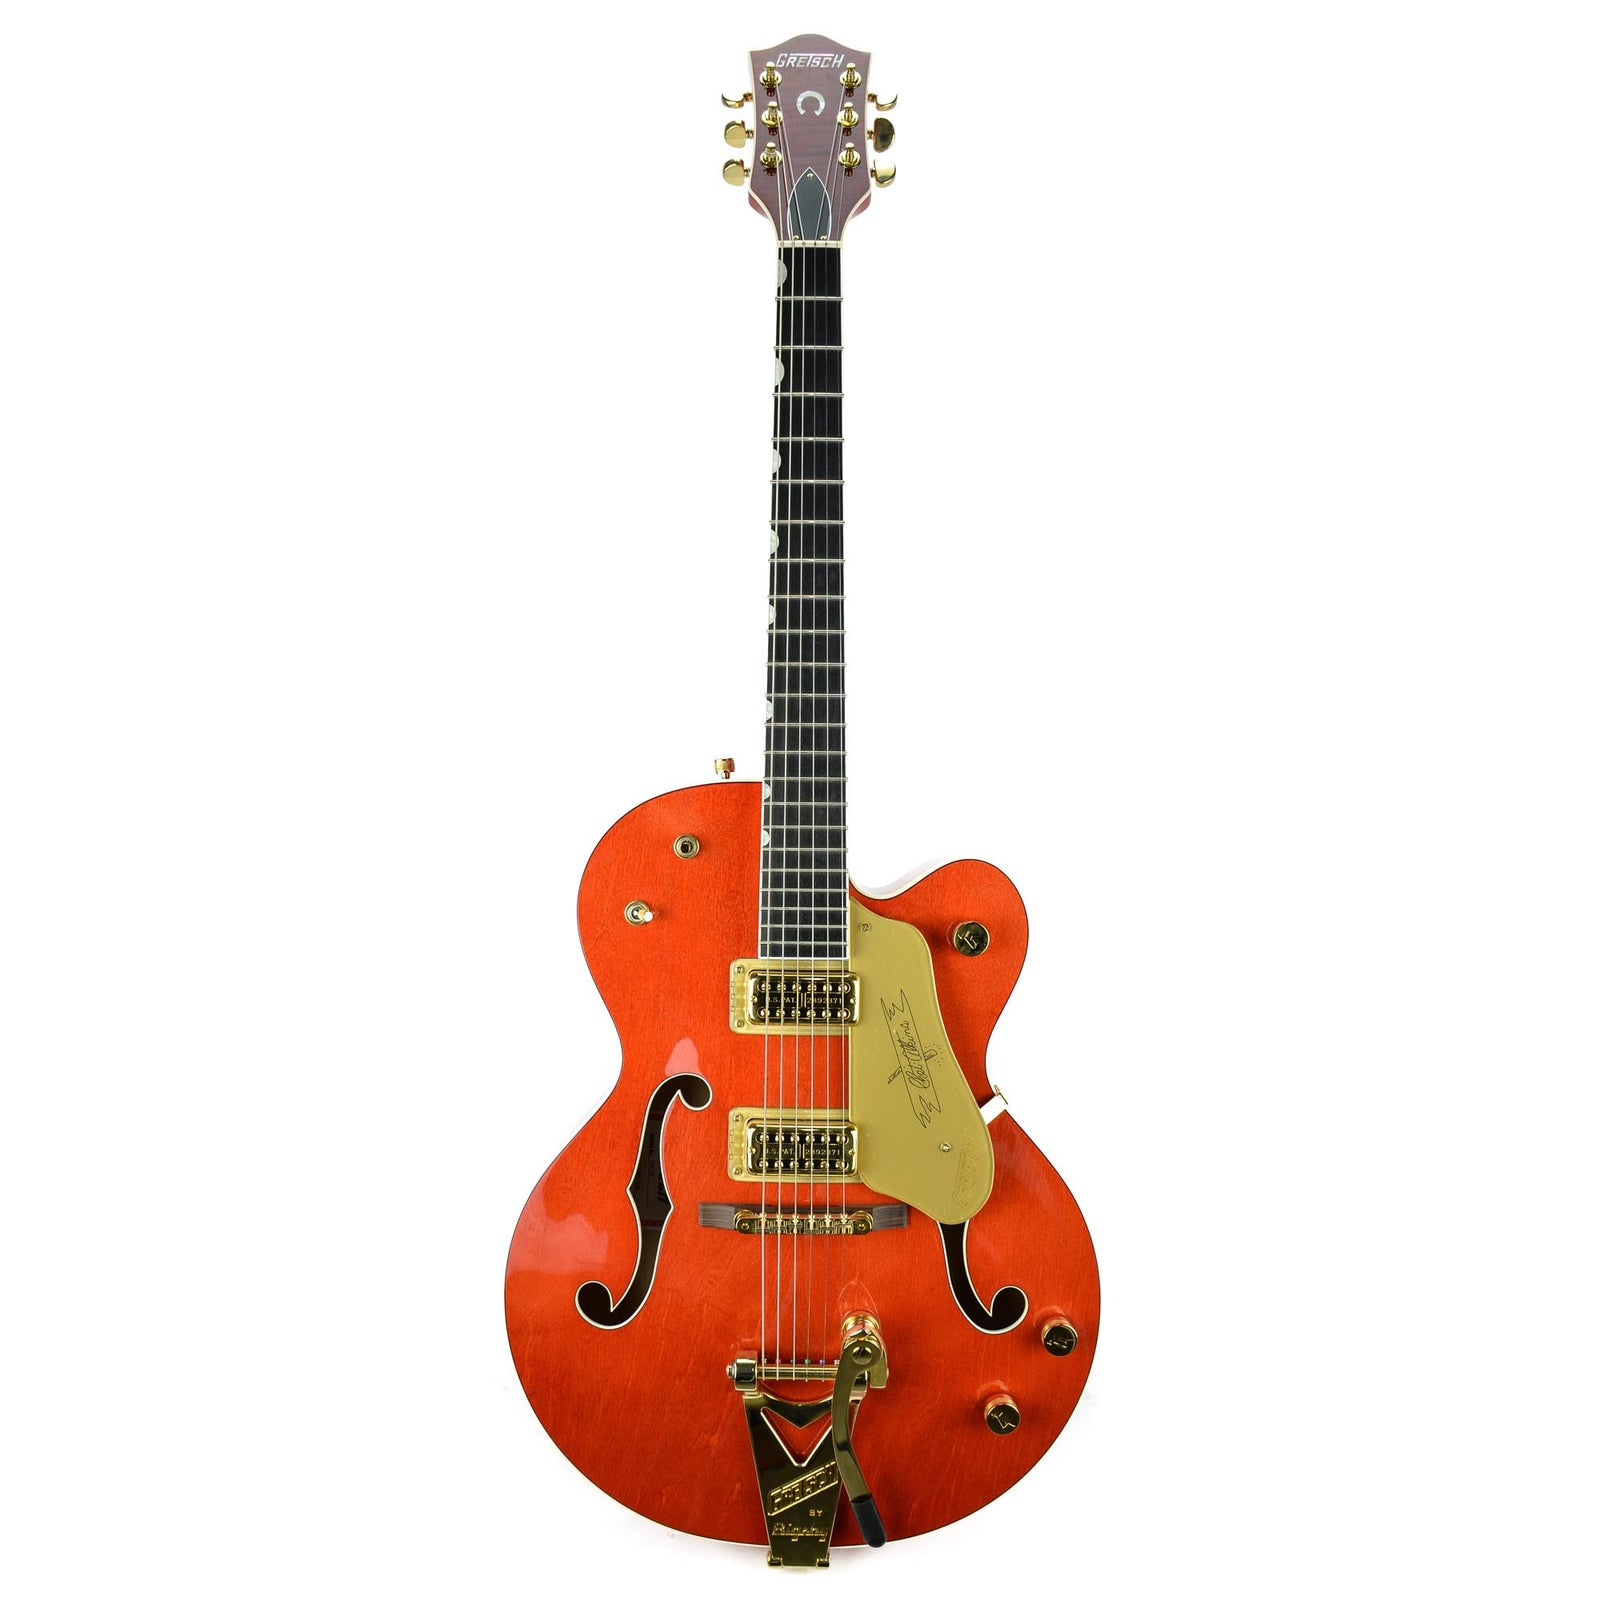 Gretsch G6120 Chet Atkins Hollow Body - Ebony Fretboard - Orange Stain - Demo